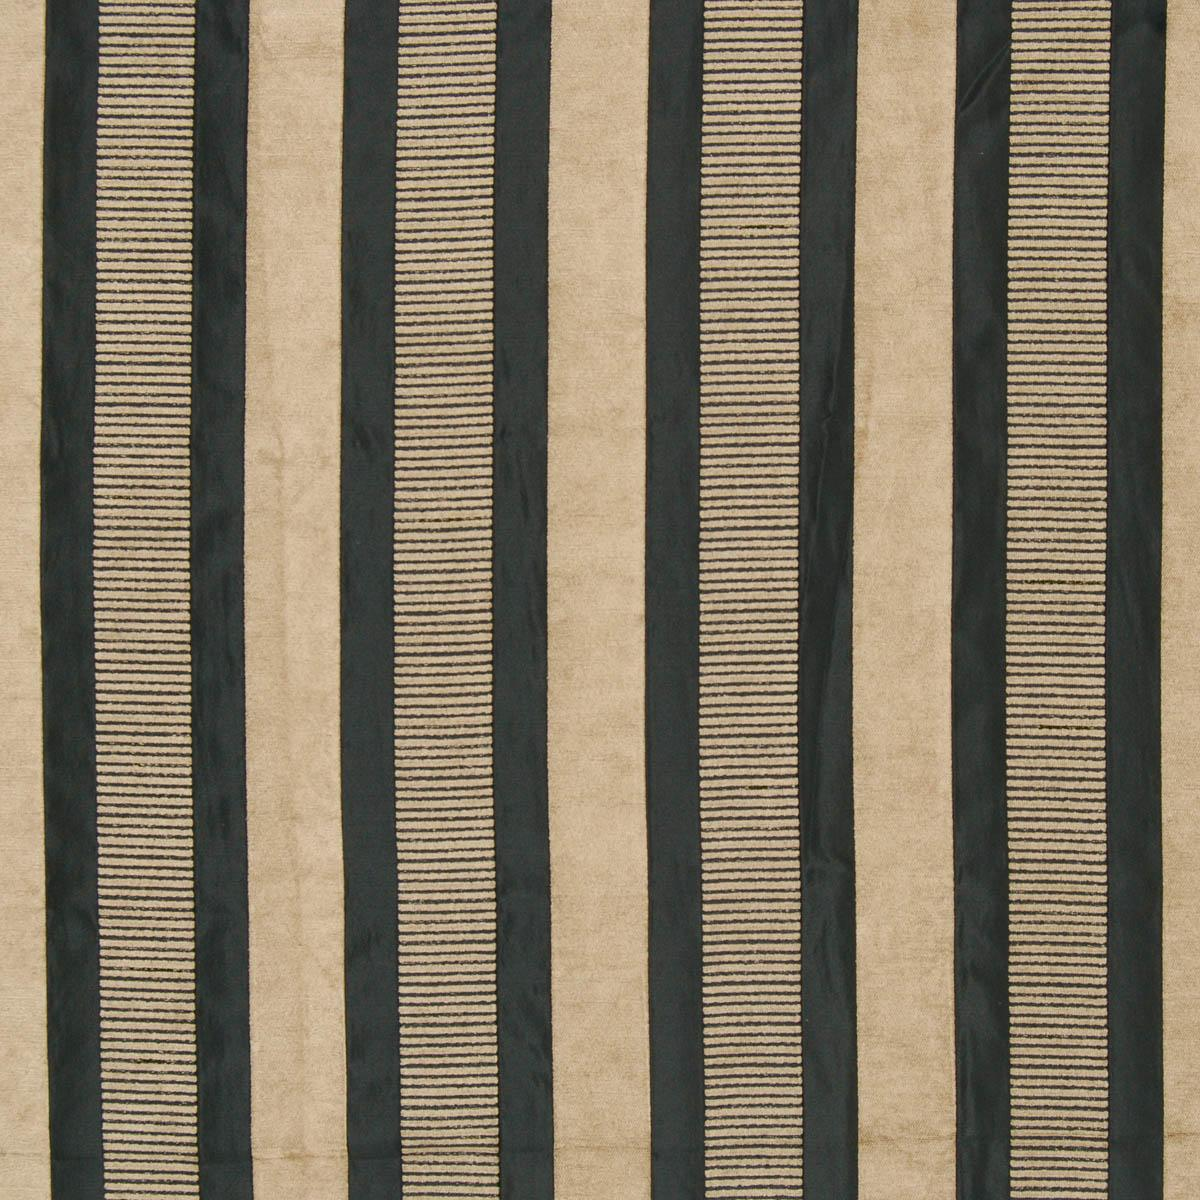 Taipei 2 Curtain Fabric Black